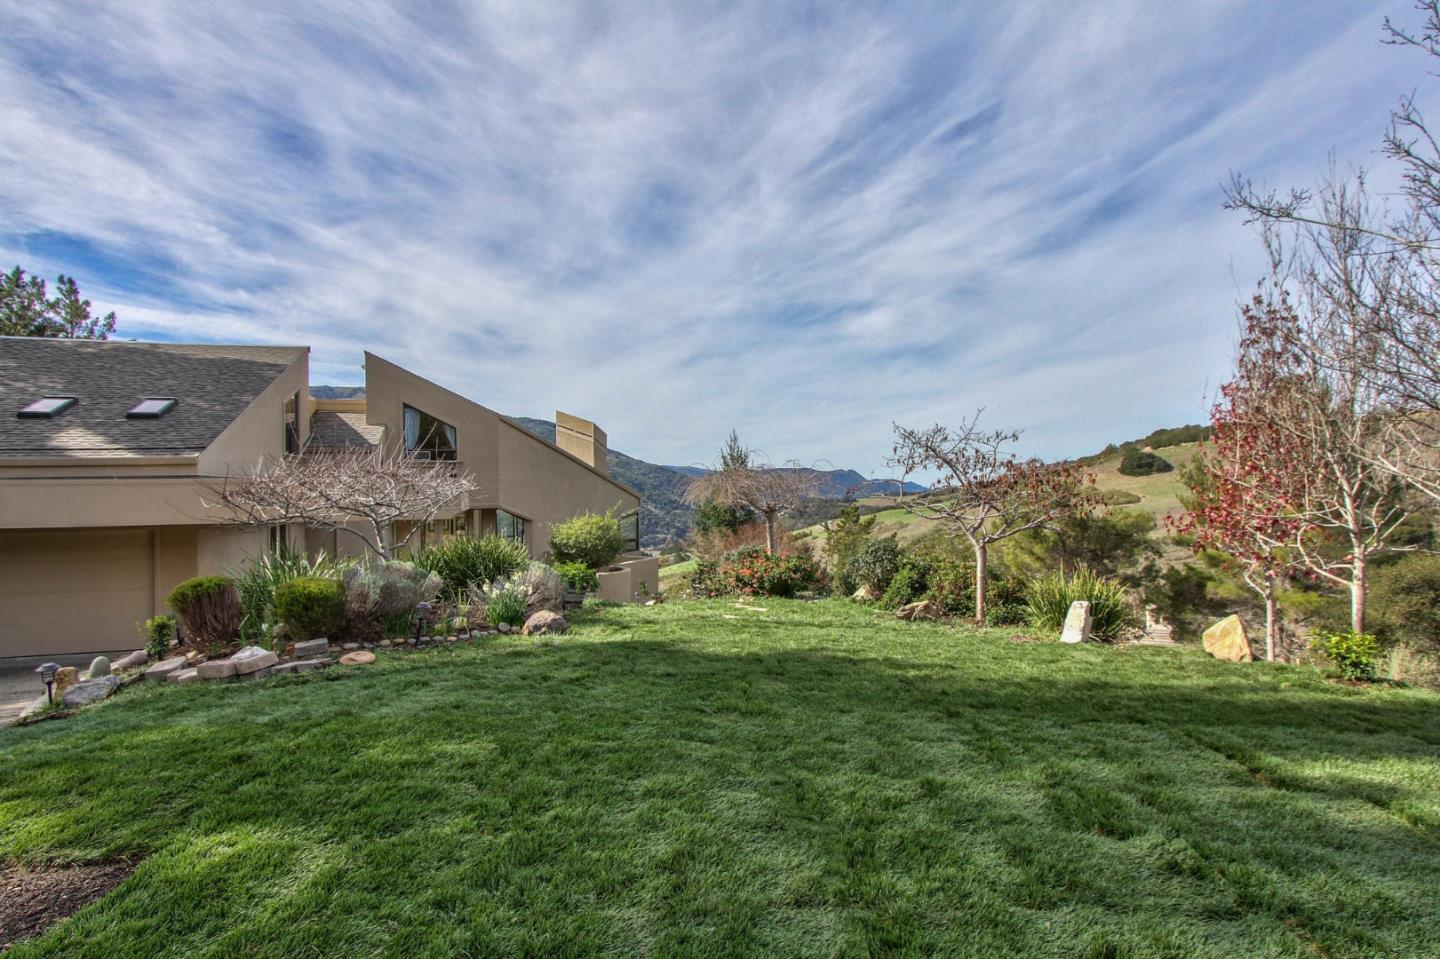 Property for sale at 5 Southview LN, Carmel Valley,  California 93924